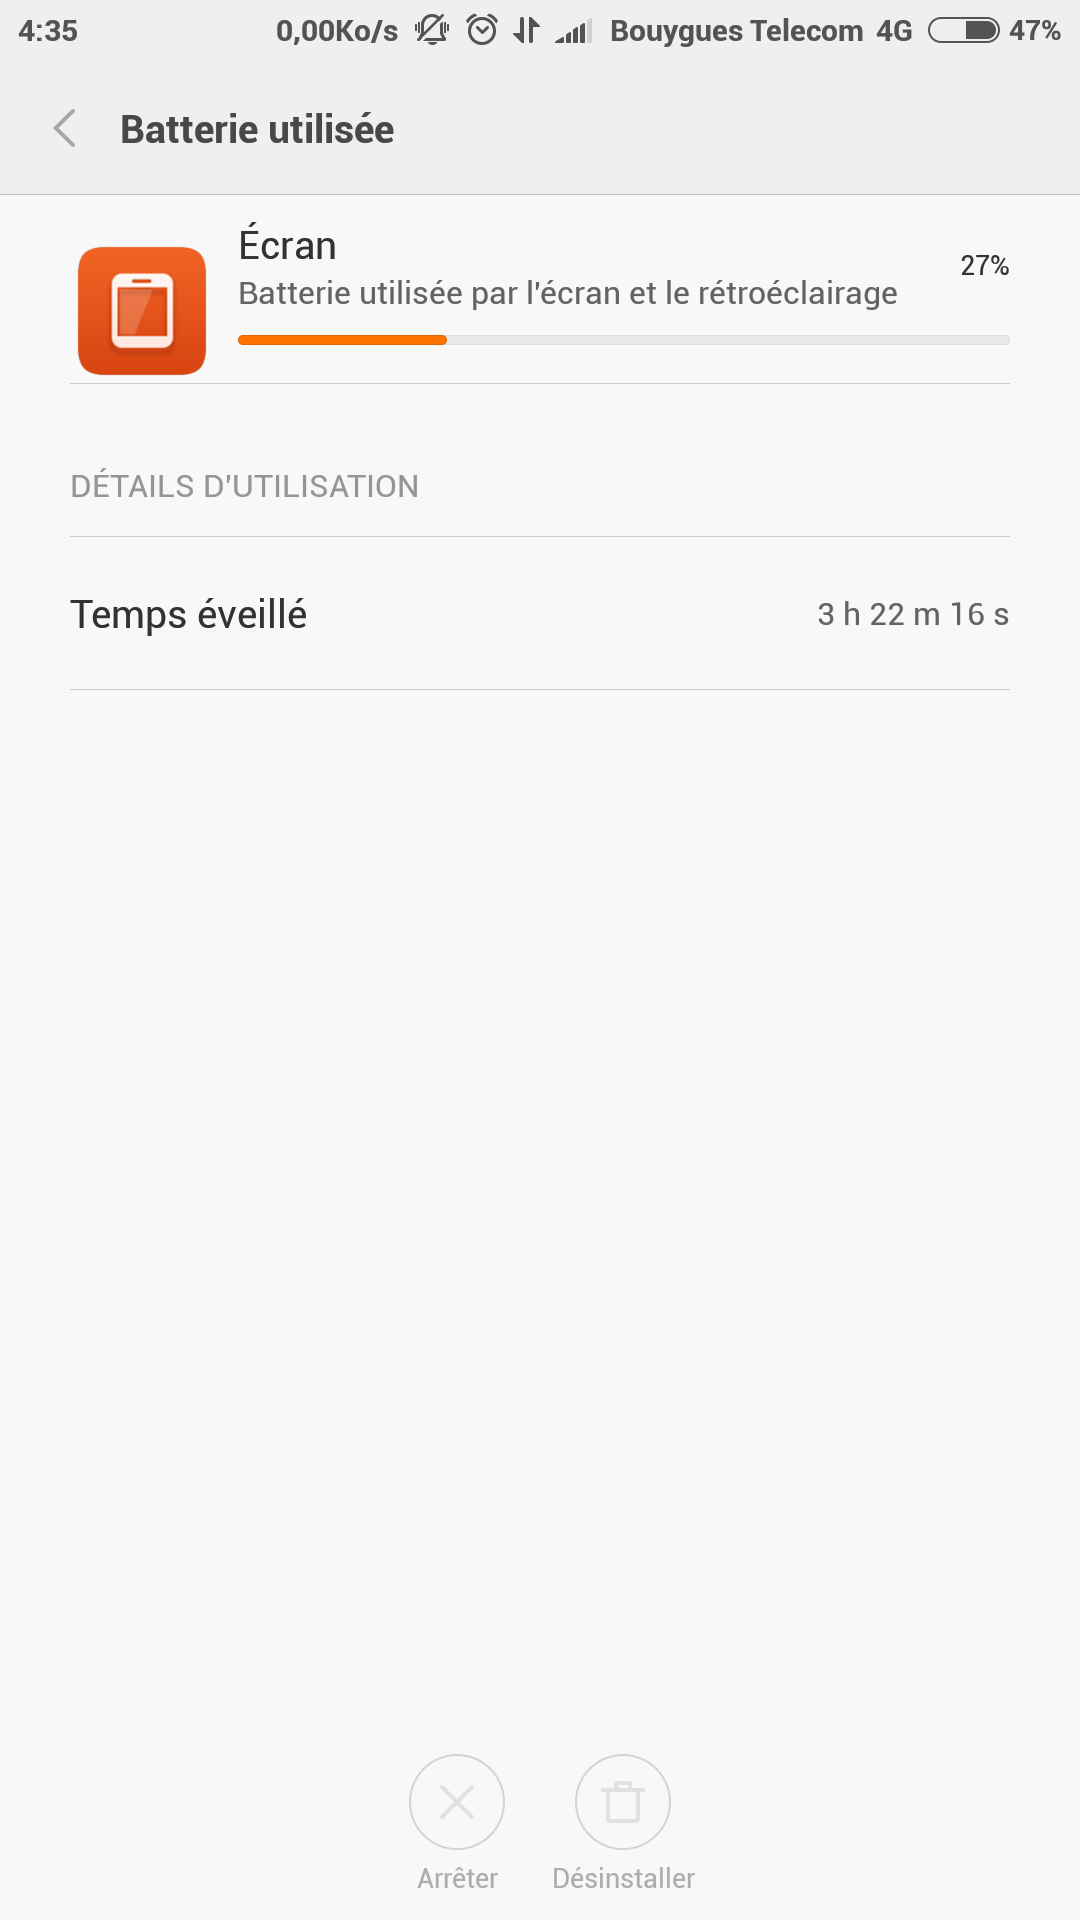 Screenshot_2016-01-15-04-35-05_com.miui_